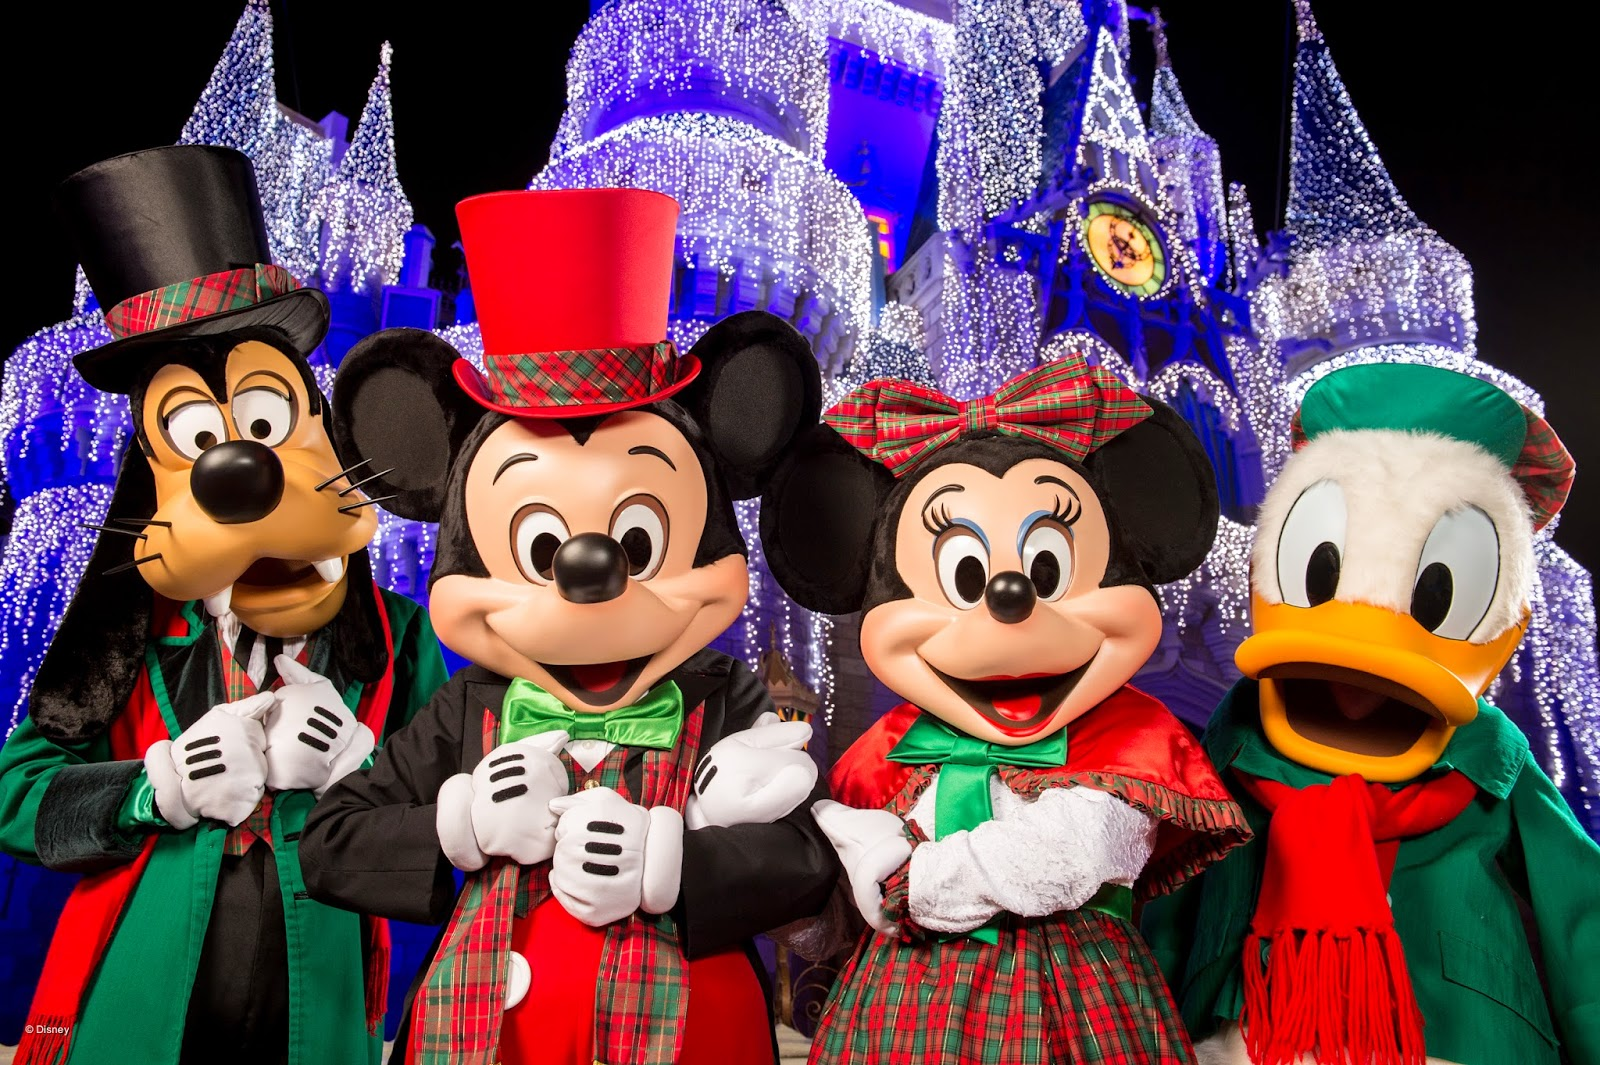 2017 mickeys very merry christmas party dates released - Mickeys Very Merry Christmas